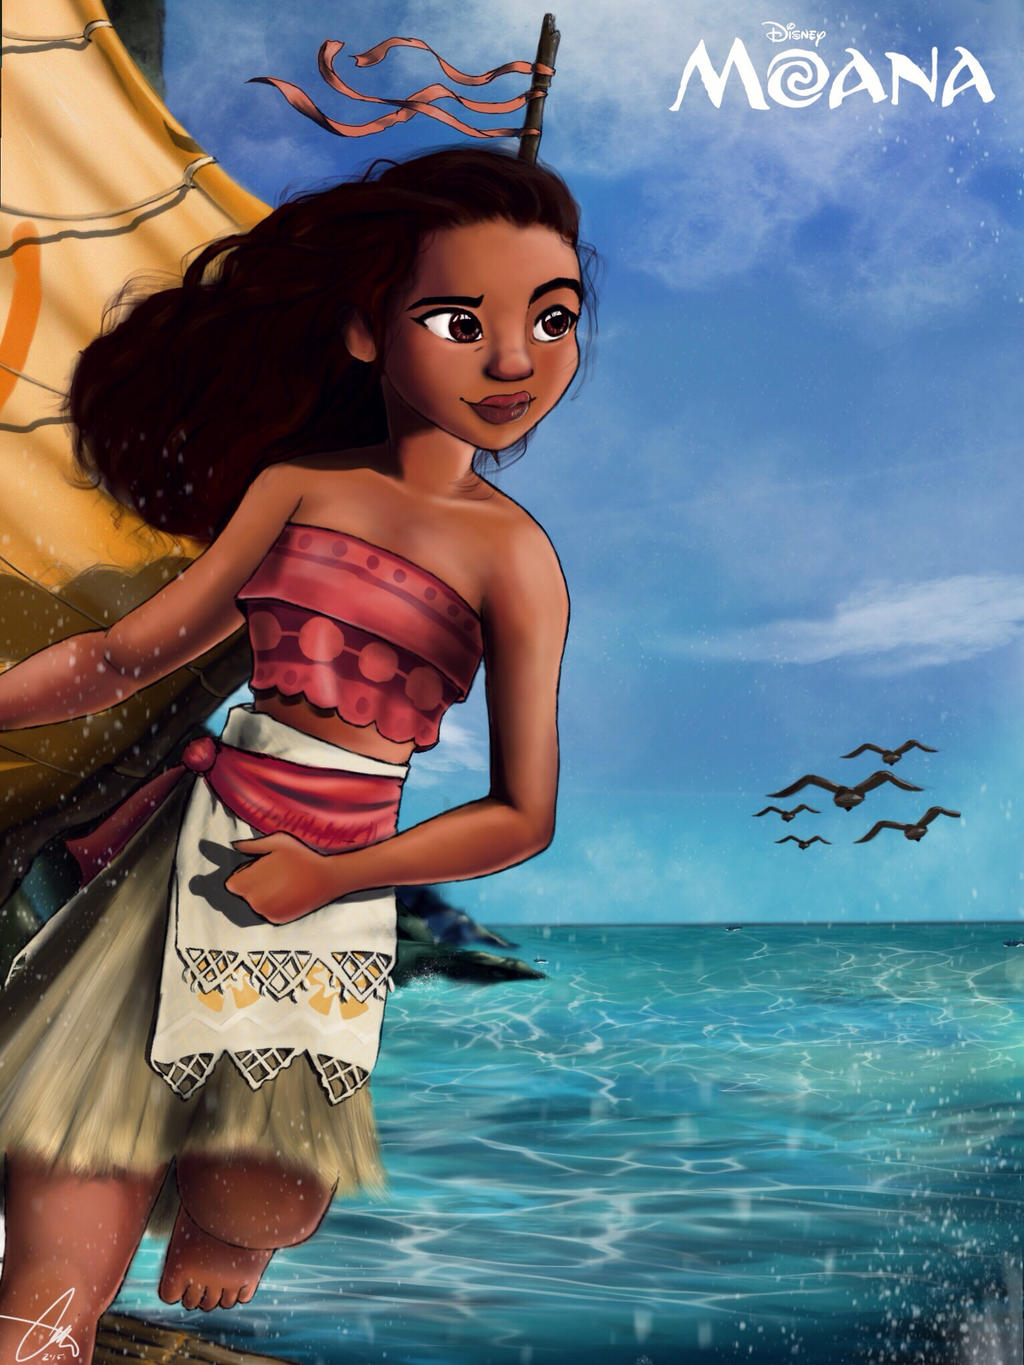 Moana by Arekusan-Meka on DeviantArt